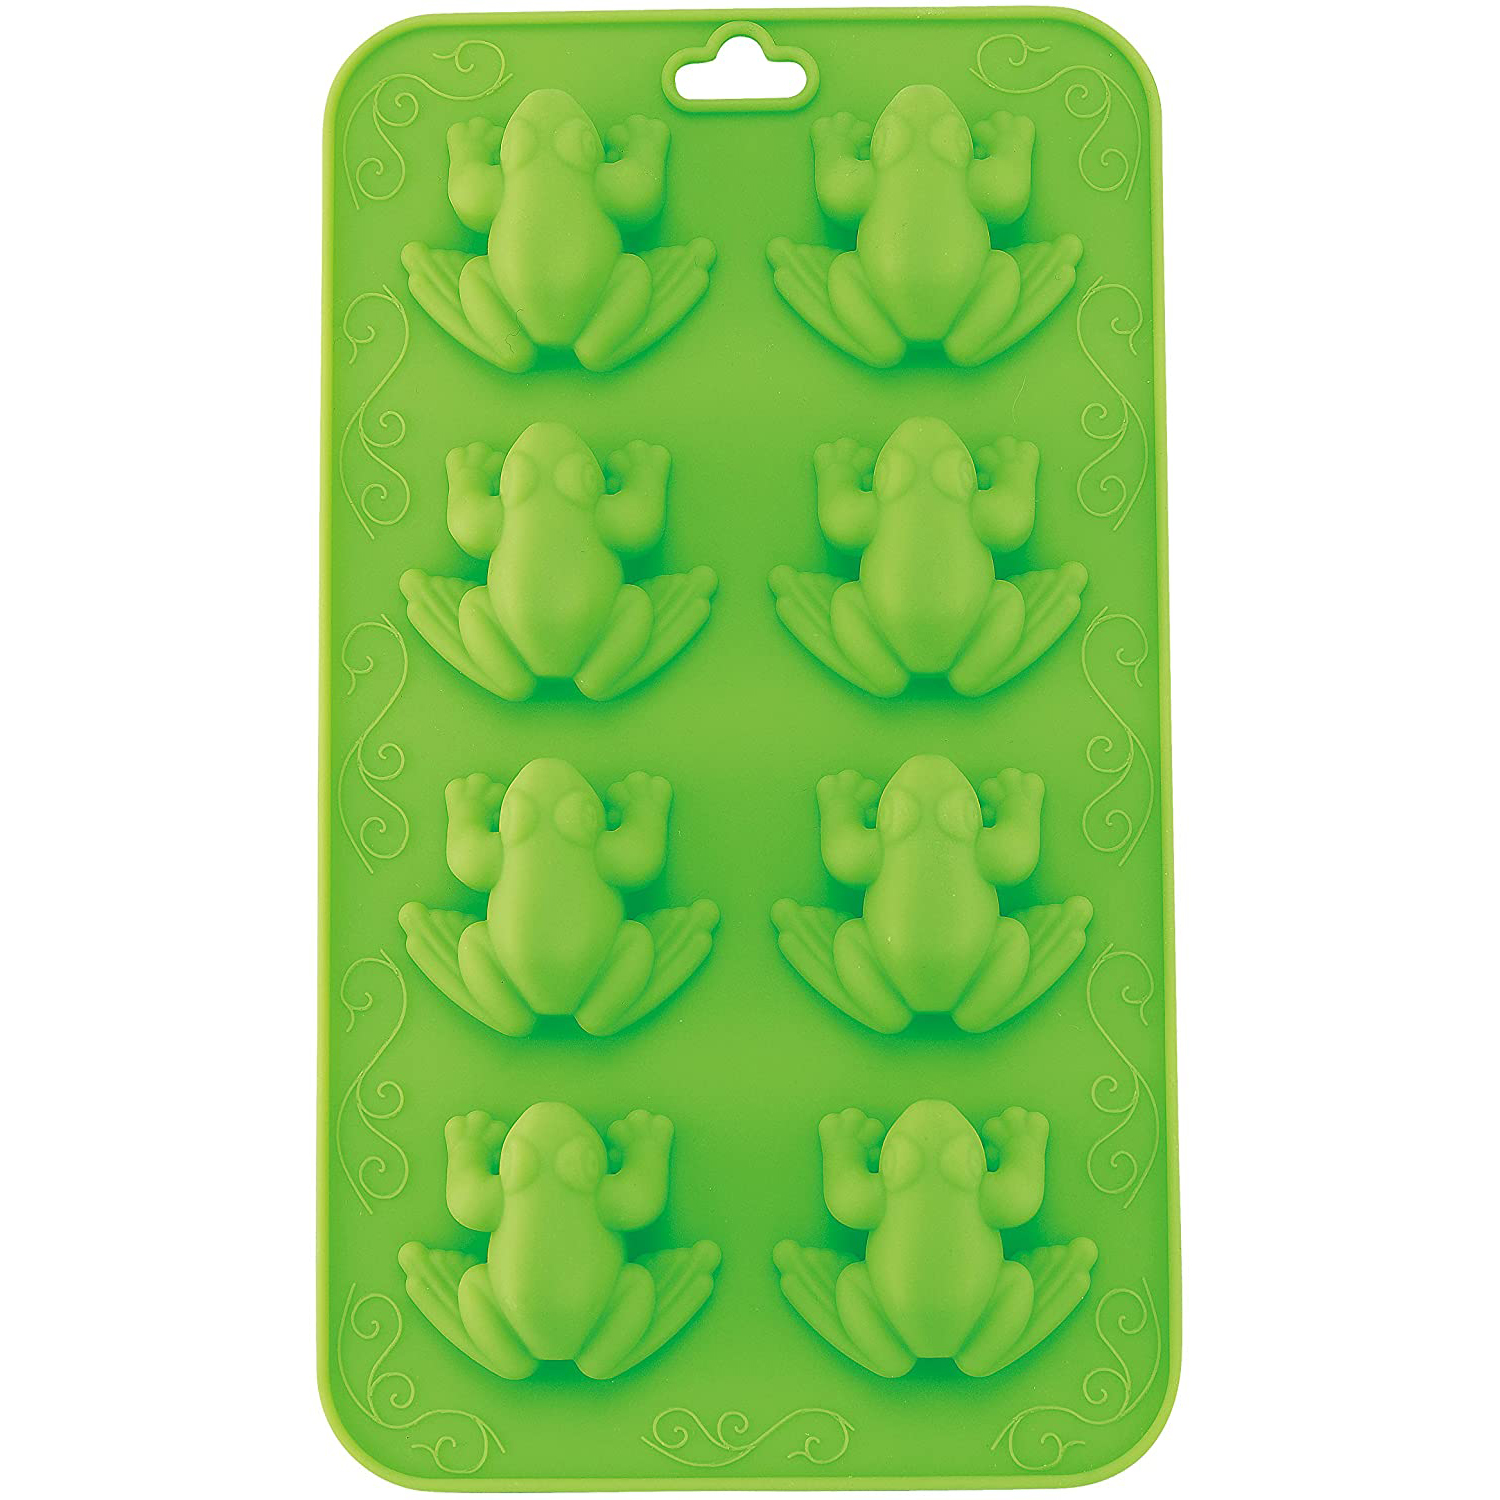 Frog Chocolate Mold in green